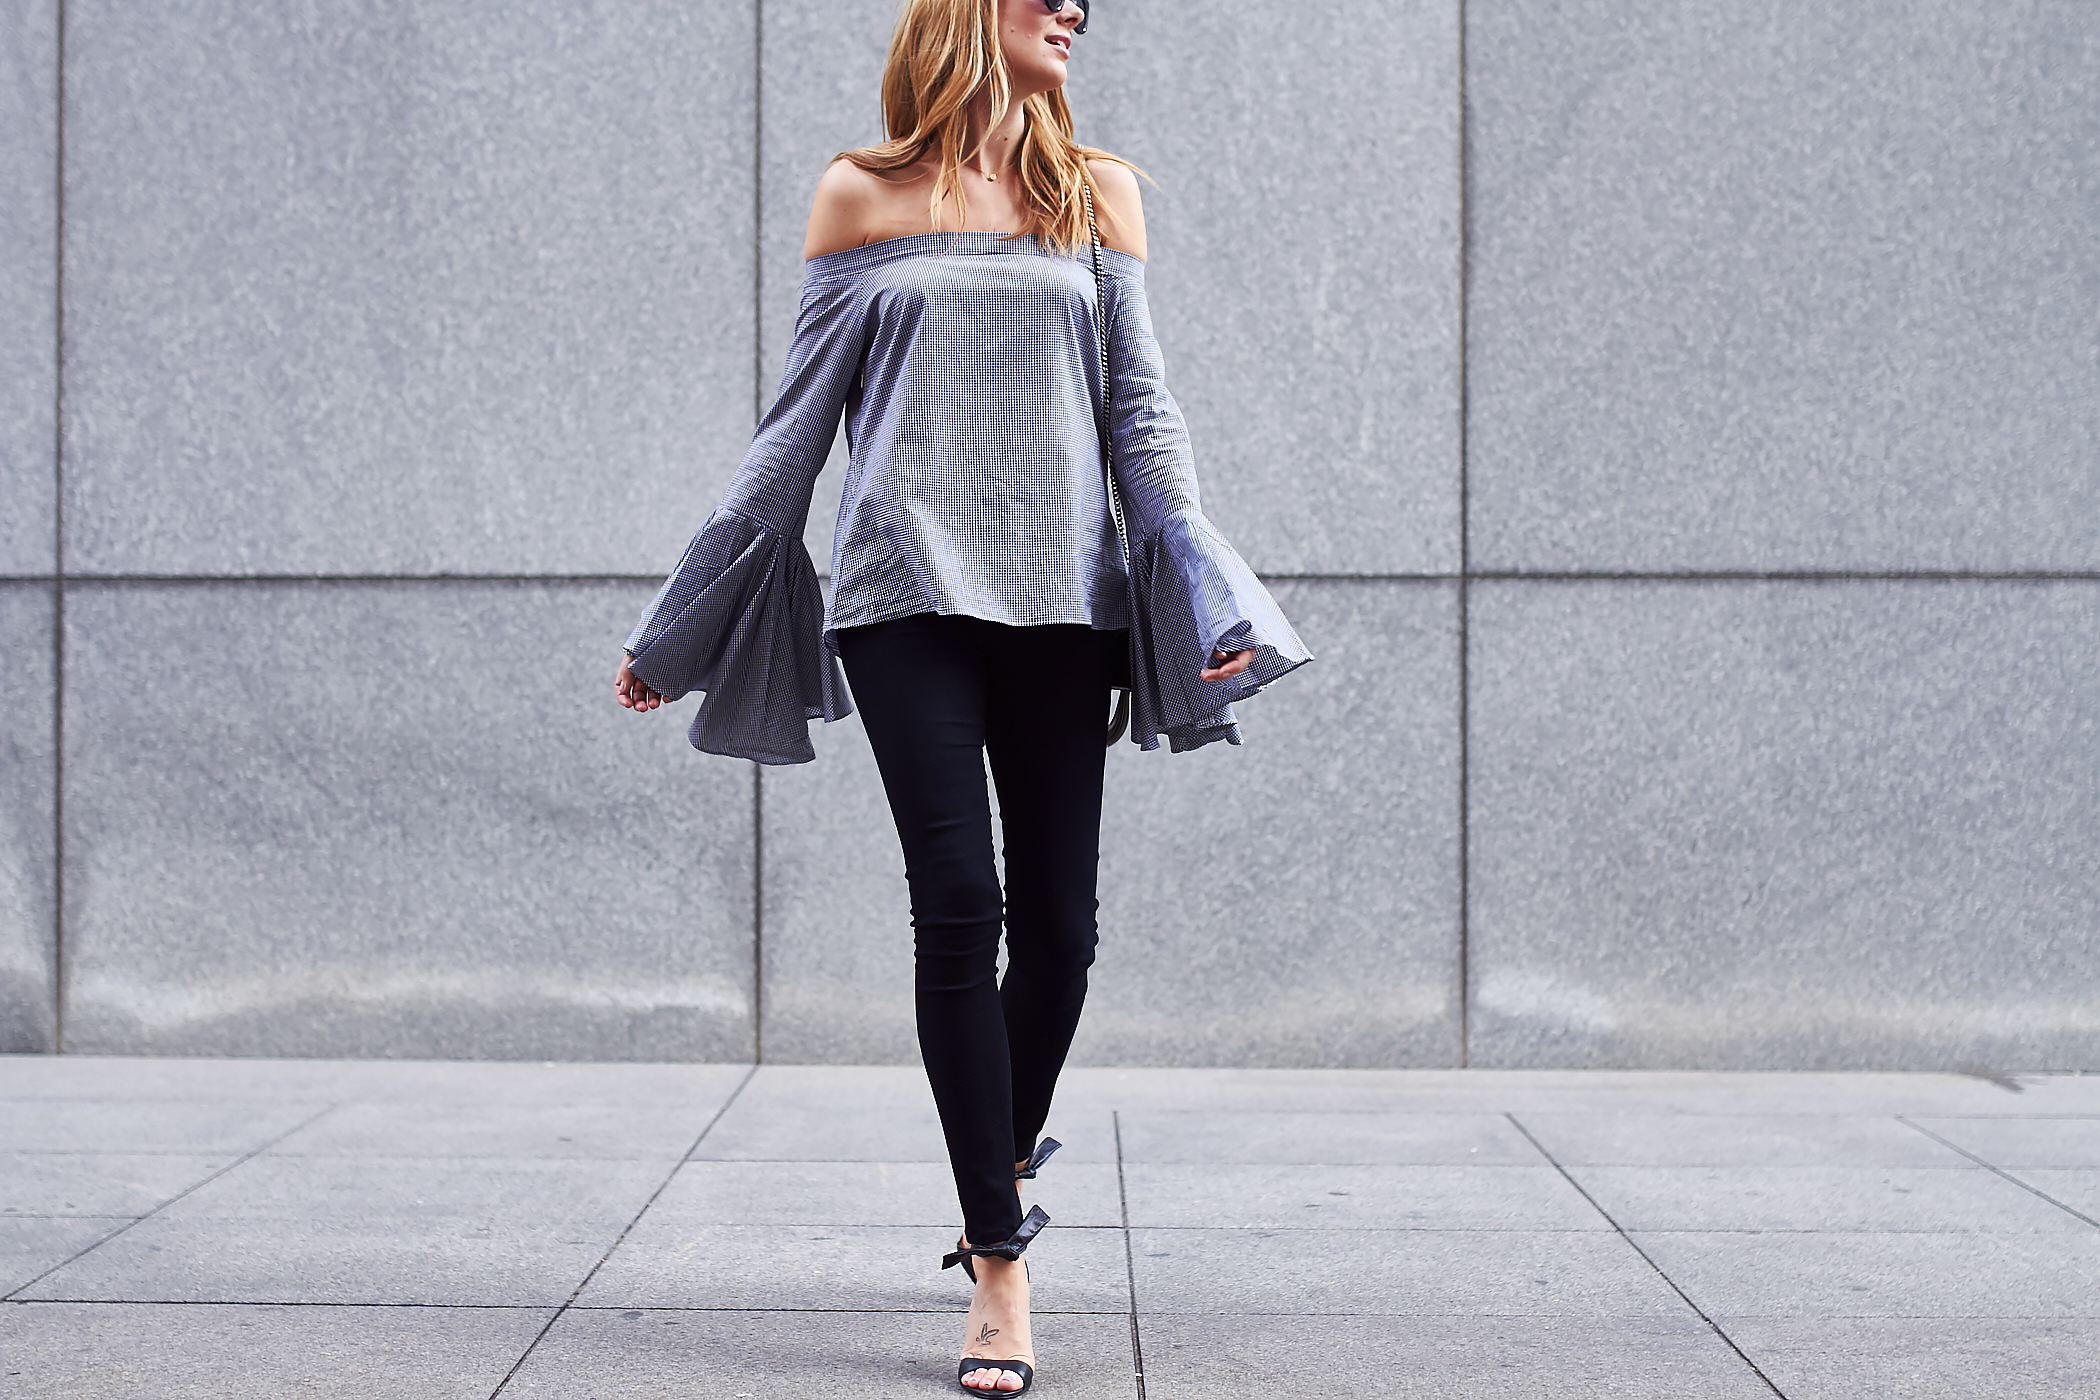 fashion-jackson-chicwish-bell-sleeve-off-the-shoulder-top-black-skinny-jeans